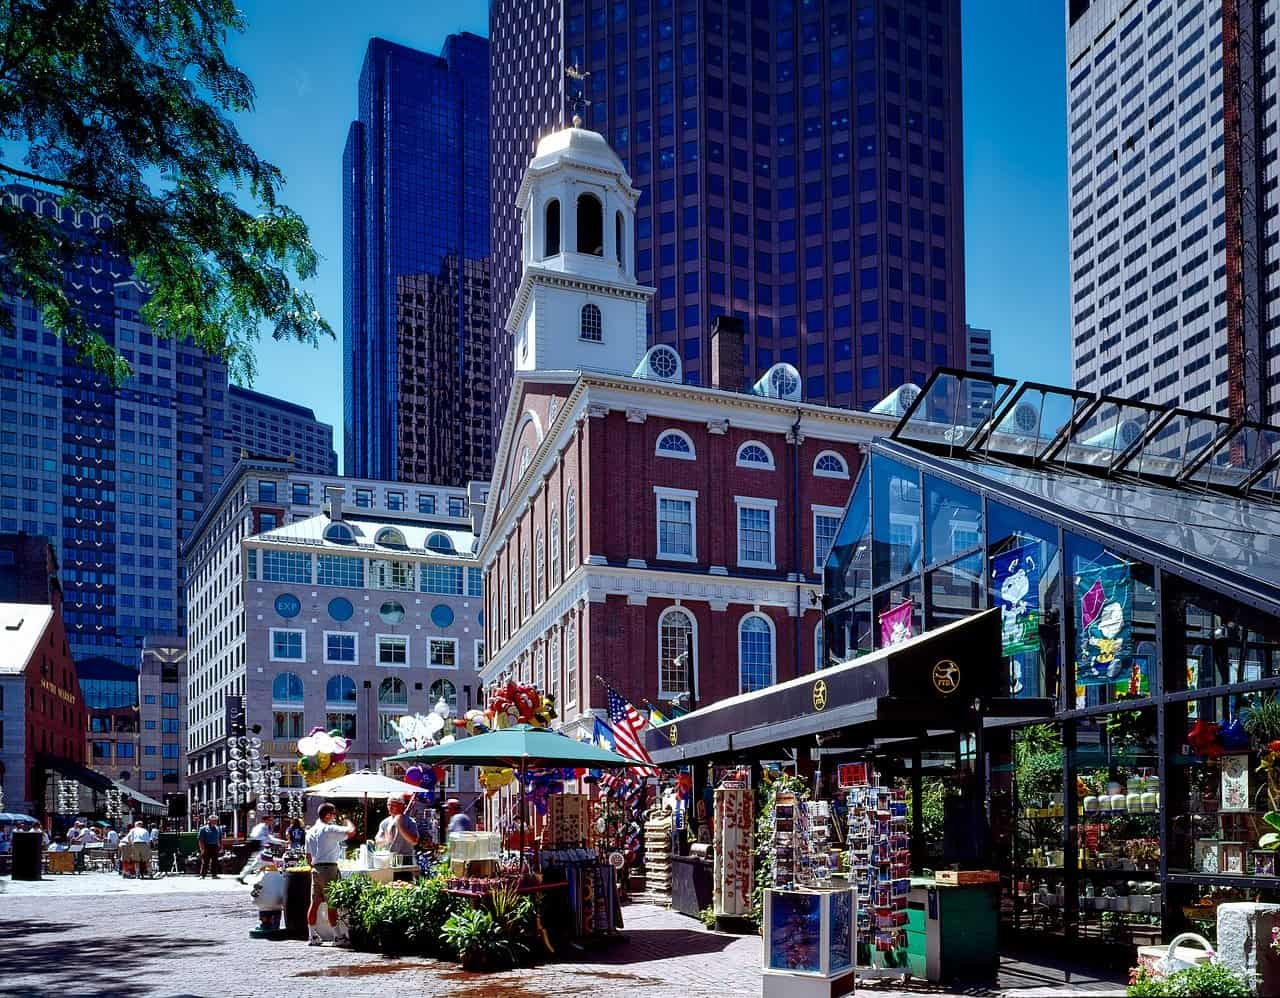 Faneuil Hall and Quincy Market are great places to visit in Boston